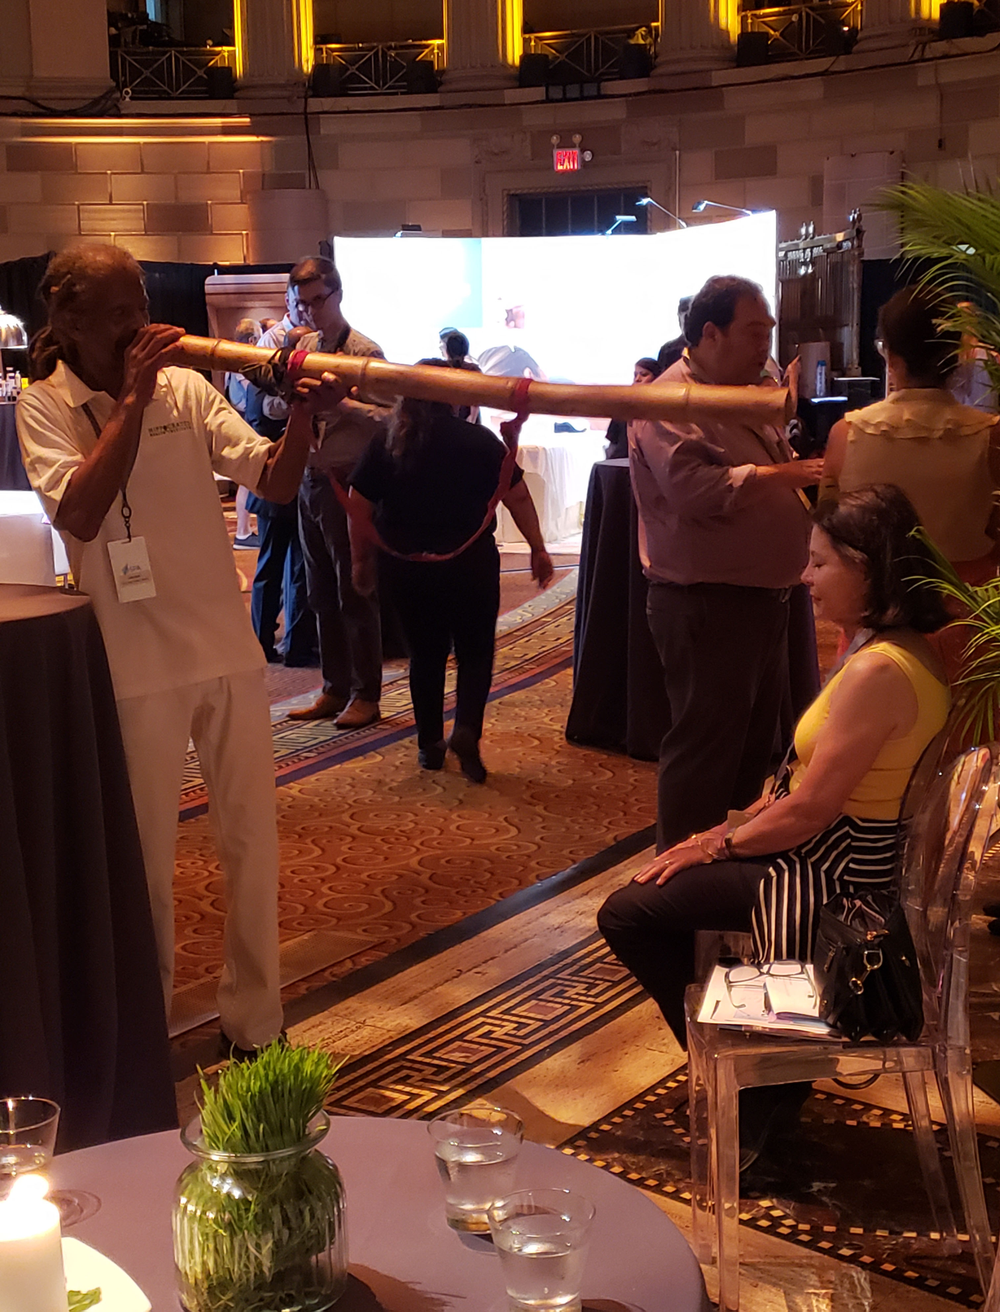 Hippocrates Health Institute showcased a Vibrational Sound Healing treatment using the didgeridoo, an ancient Aboriginal instrument, offering a broad range of harmonics to help lift an individual's vibration back into alignment and balance.